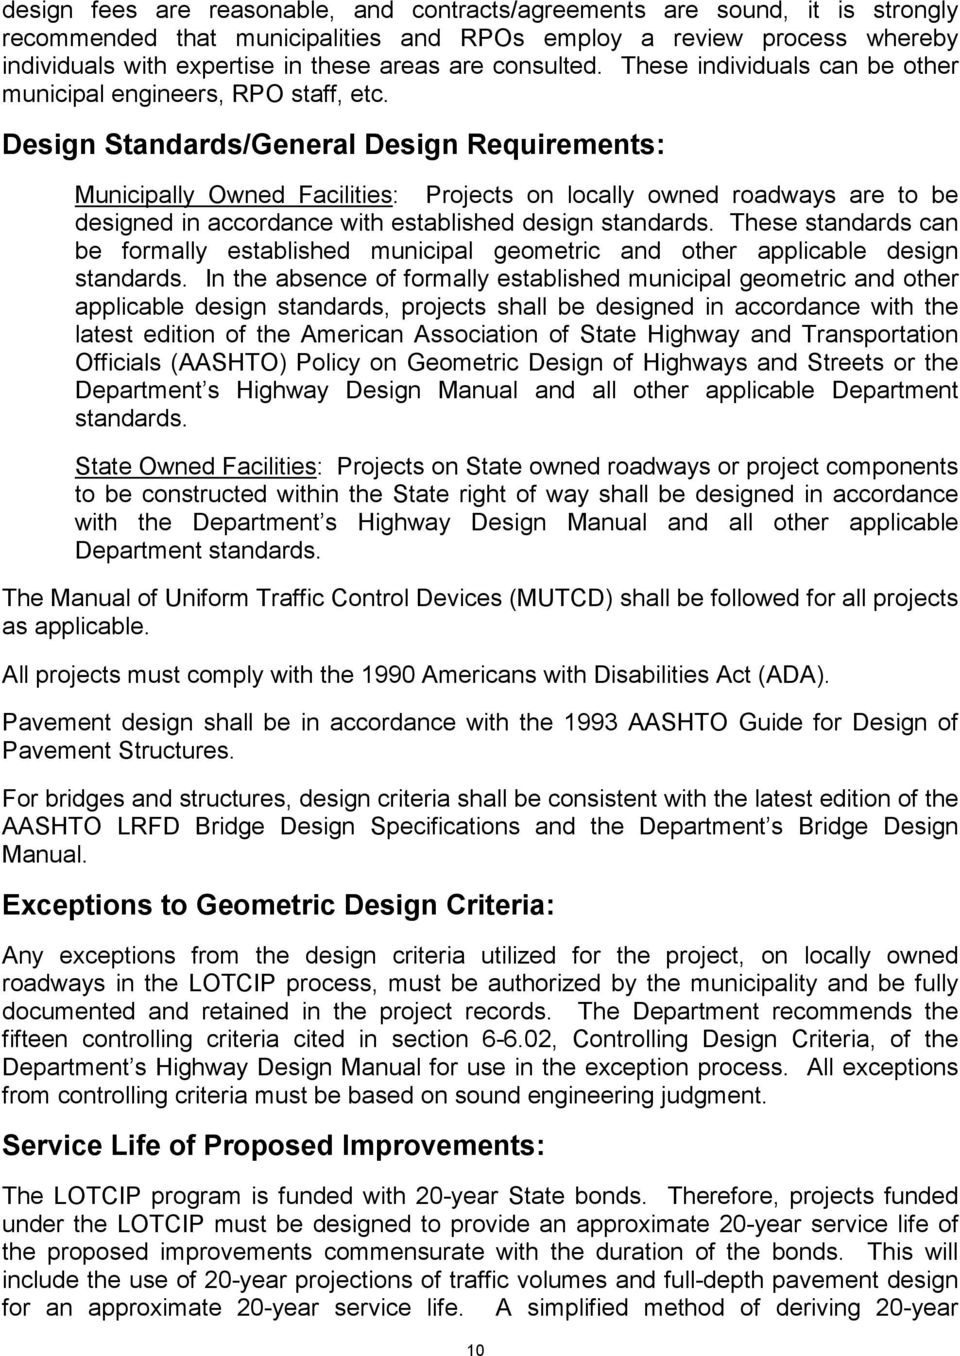 Design Standards/General Design Requirements: Municipally Owned Facilities: Projects on locally owned roadways are to be designed in accordance with established design standards.